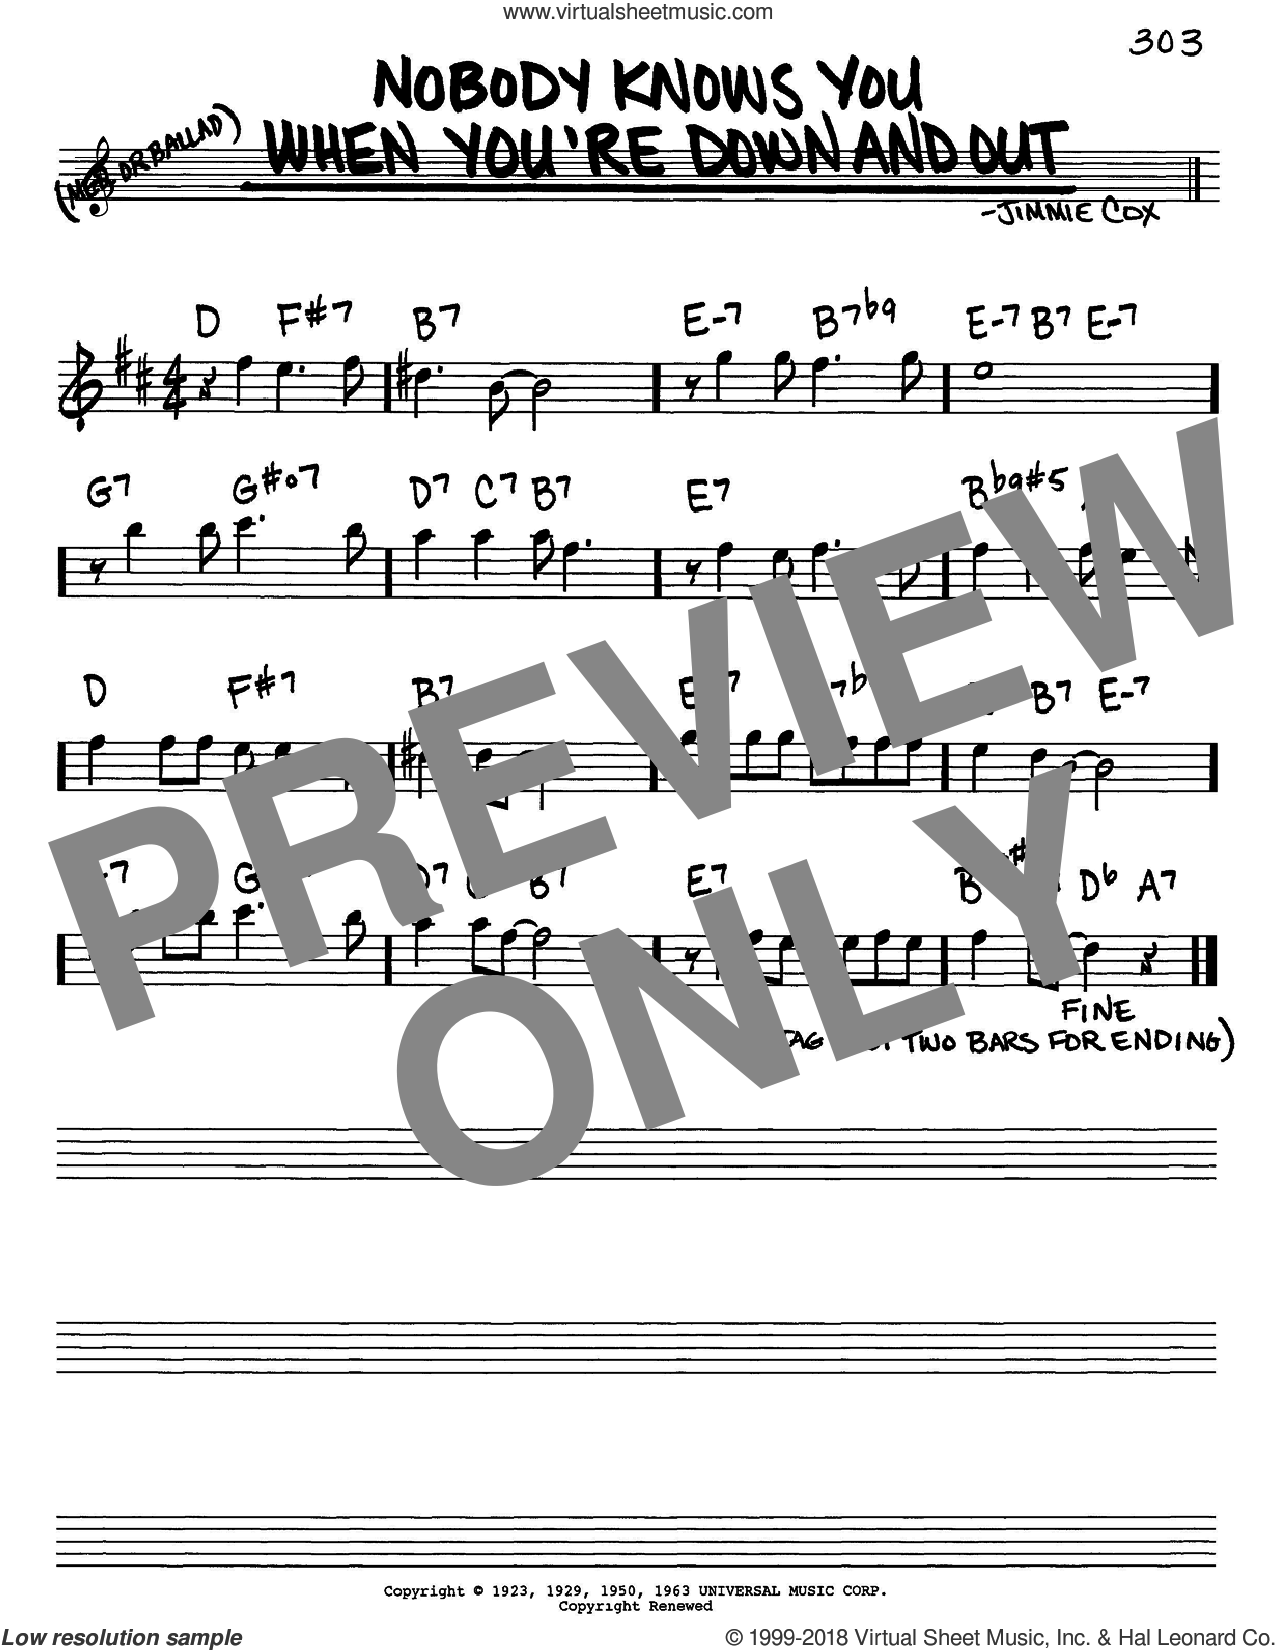 Nobody Knows You When You're Down And Out sheet music for voice and other instruments (Eb) by Jimmie Cox. Score Image Preview.